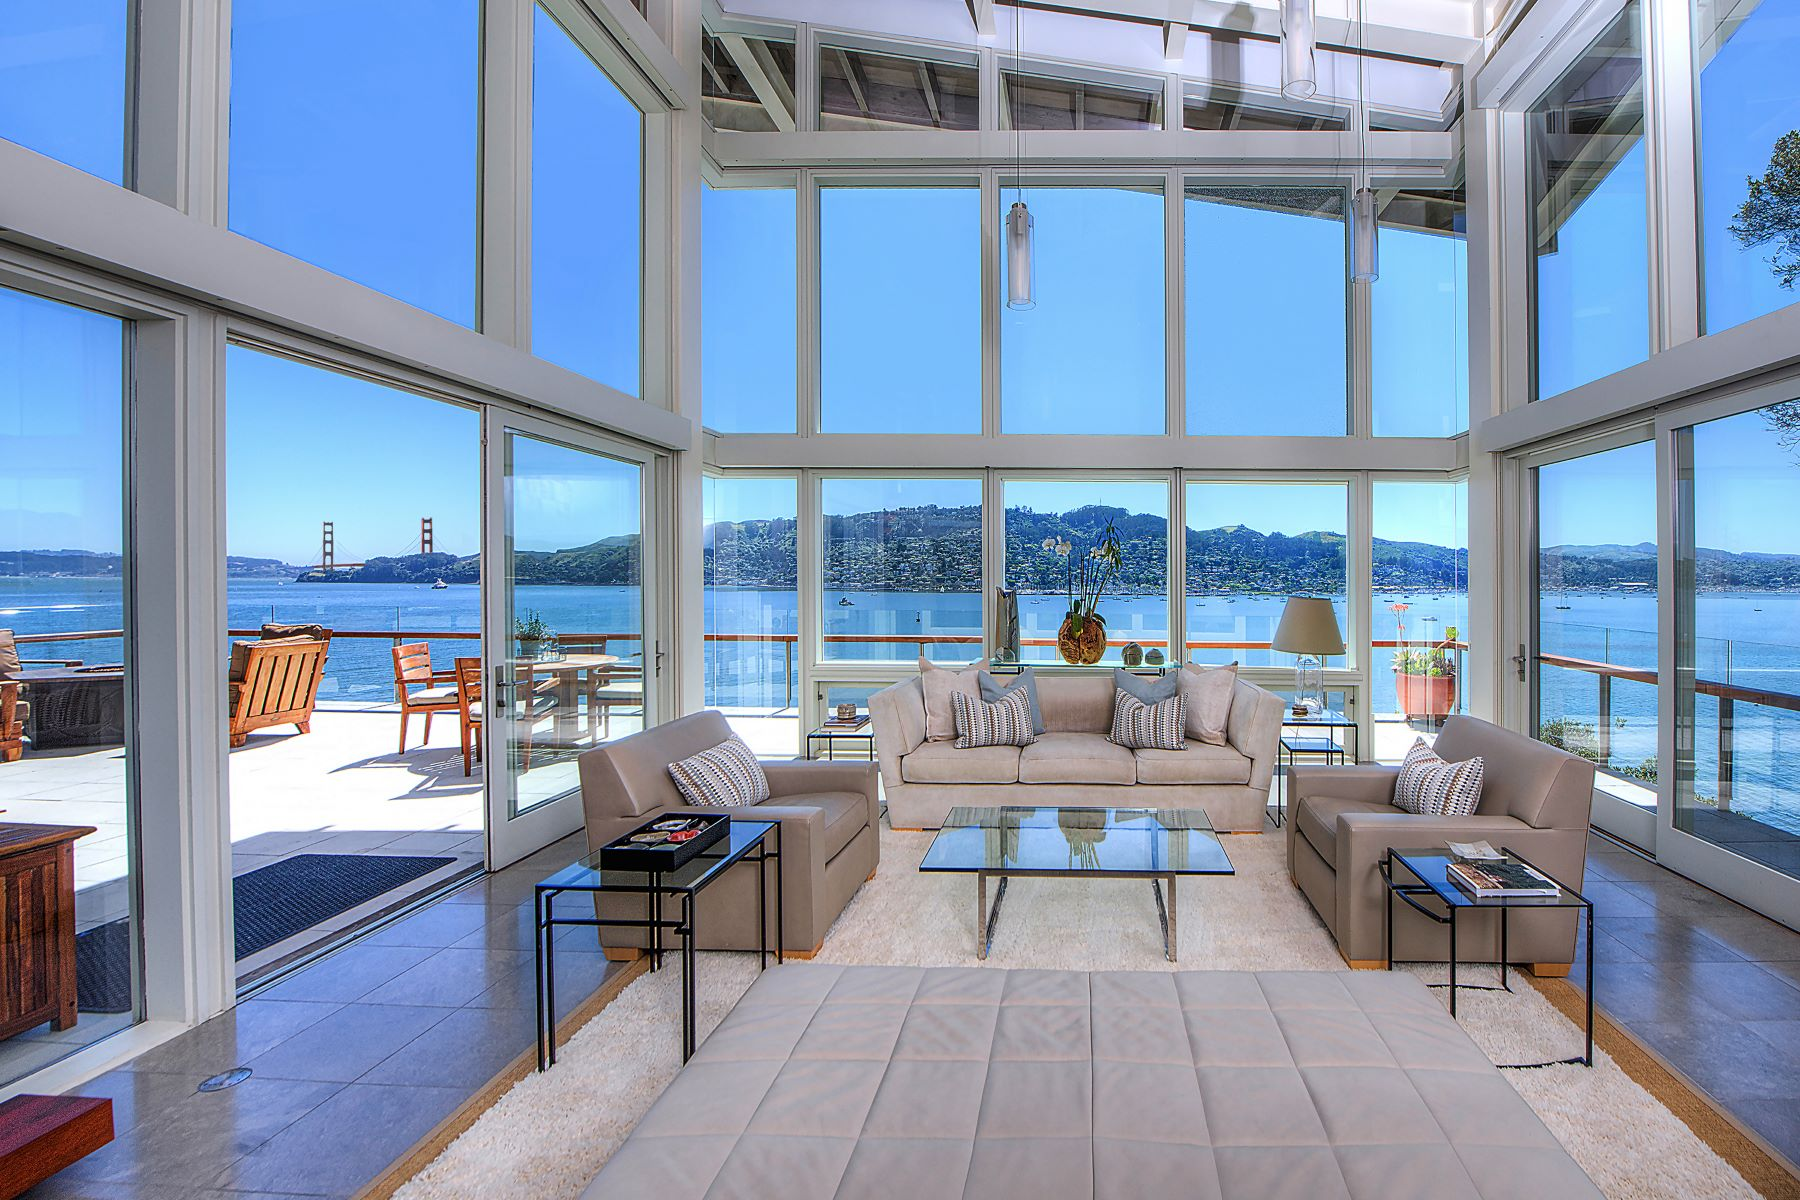 Single Family Home for Sale at Cliffside Contemporary 8 Cliff Road Belvedere, California, 94920 United States